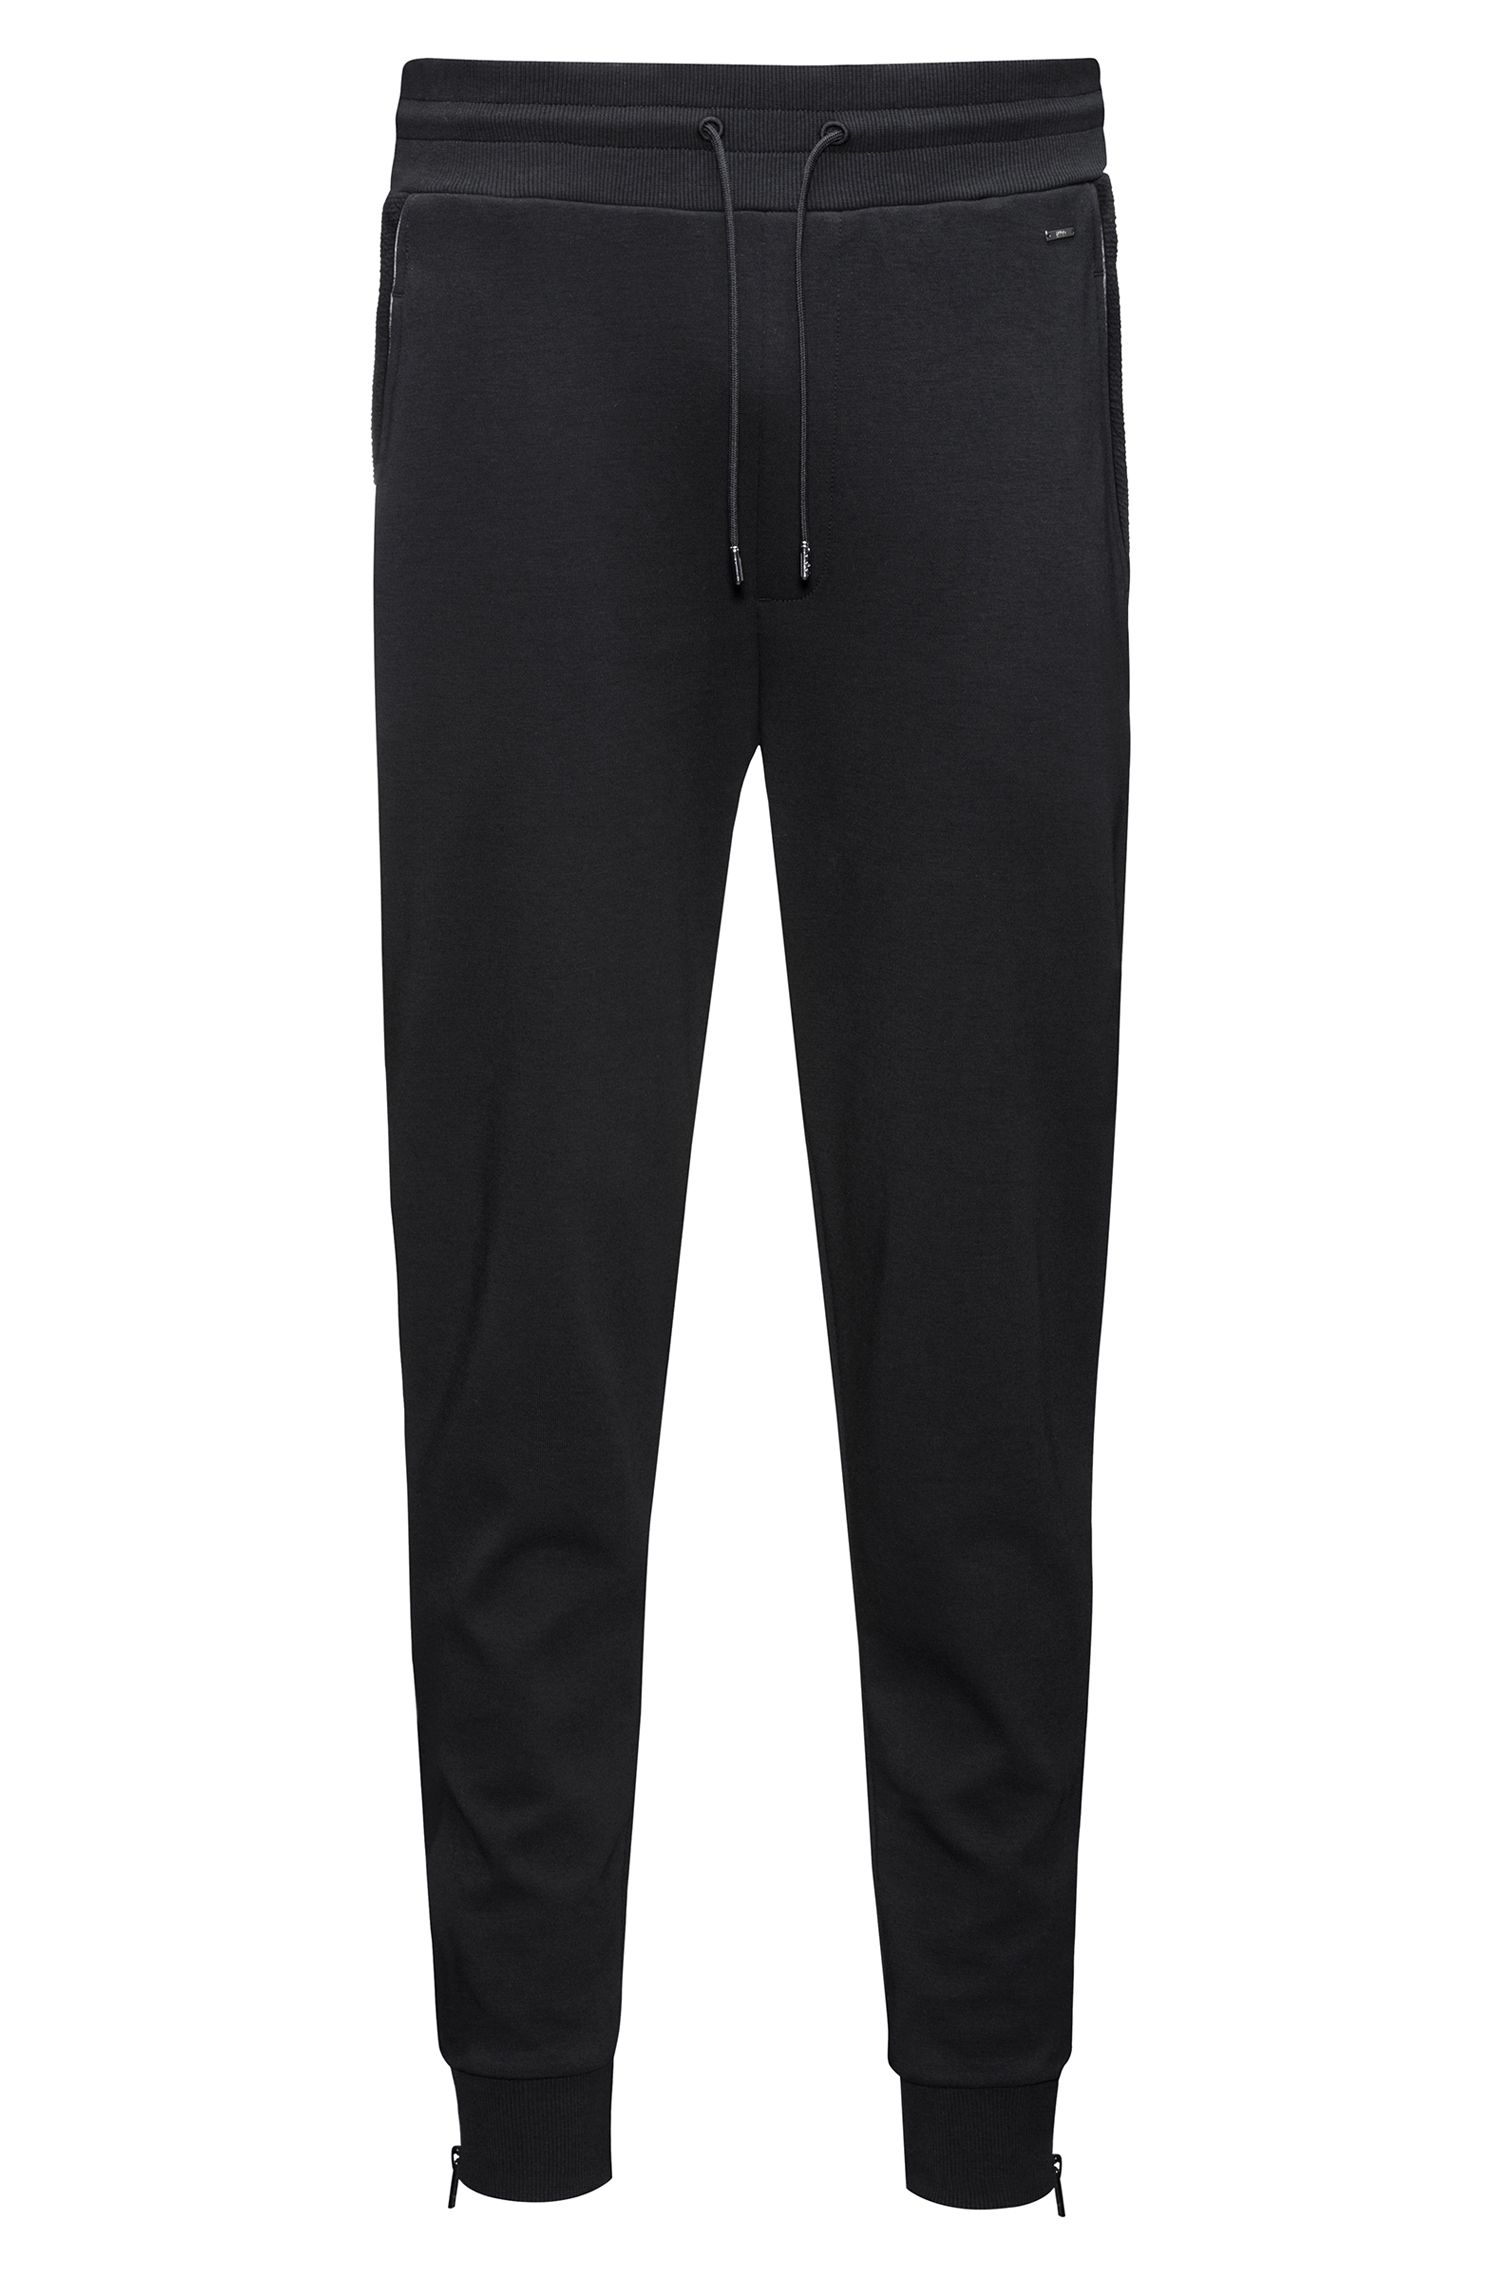 Regular-fit joggingbroek van interlocked katoens